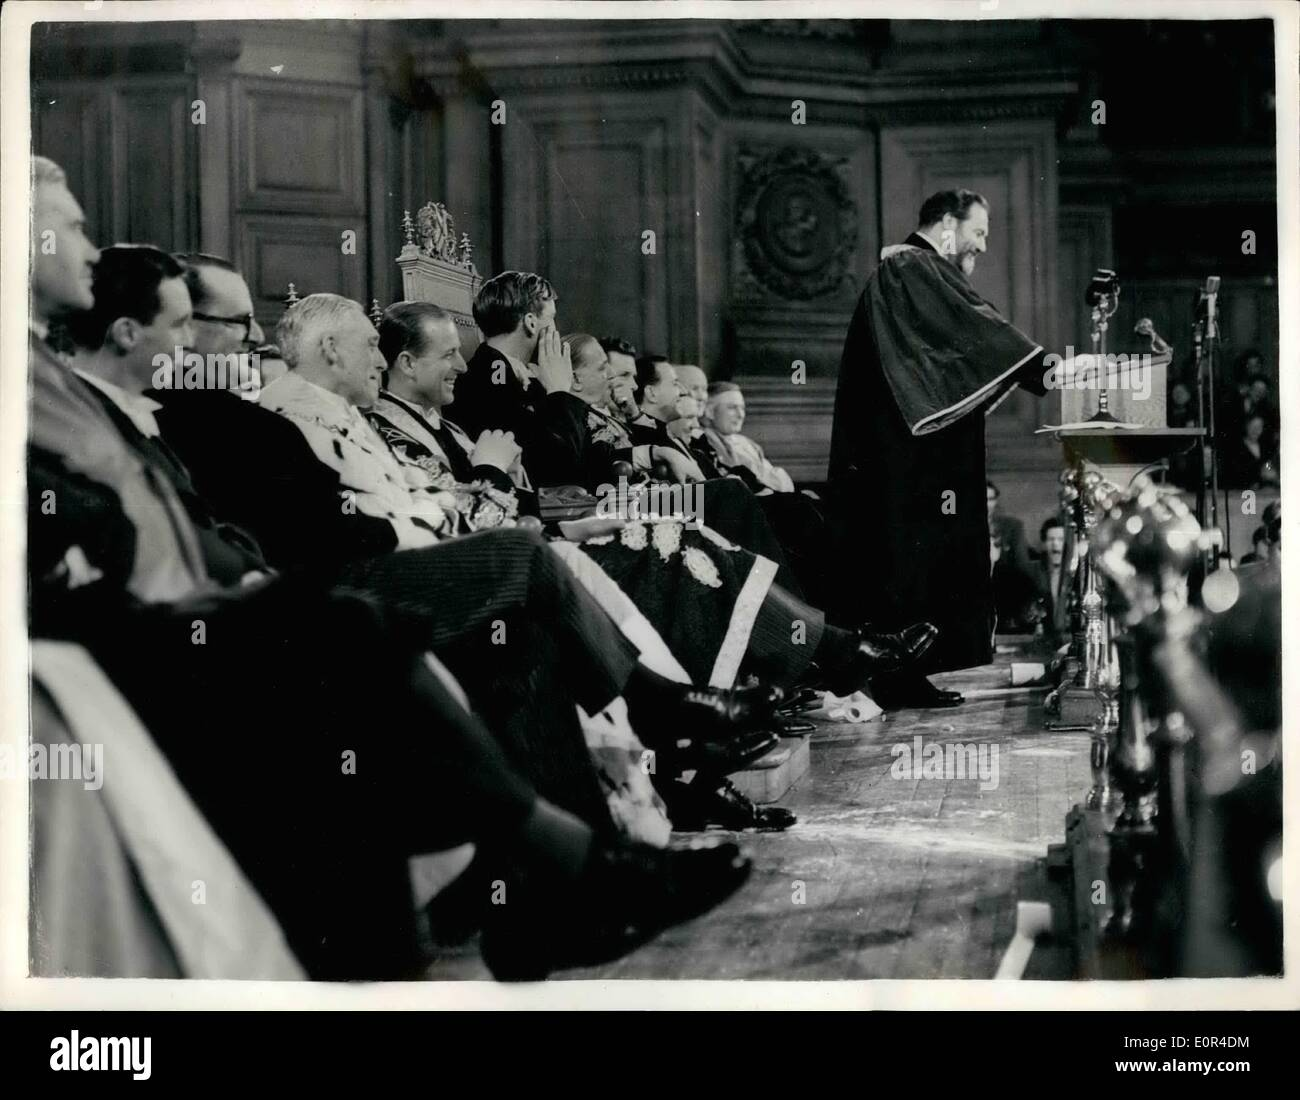 Feb. 02, 1958 - The Duke of Edinburgh faces a barrage of toilet paper at Edinburgh University:The Duke of Edinburgh was hit by a flying roll of toilet paper at Edinburgh University yesterday.  gr as the end of the roll lanced in his lap. He put on his mortar board to prevent further direct its. wearing is robes as a cancellor, he was sitting on the platforn watching actor James Robertson Justice being installed as the university's recor. The Duke had one of the rowdiast receptions given by students on Rectorial Day for years - Stock Image